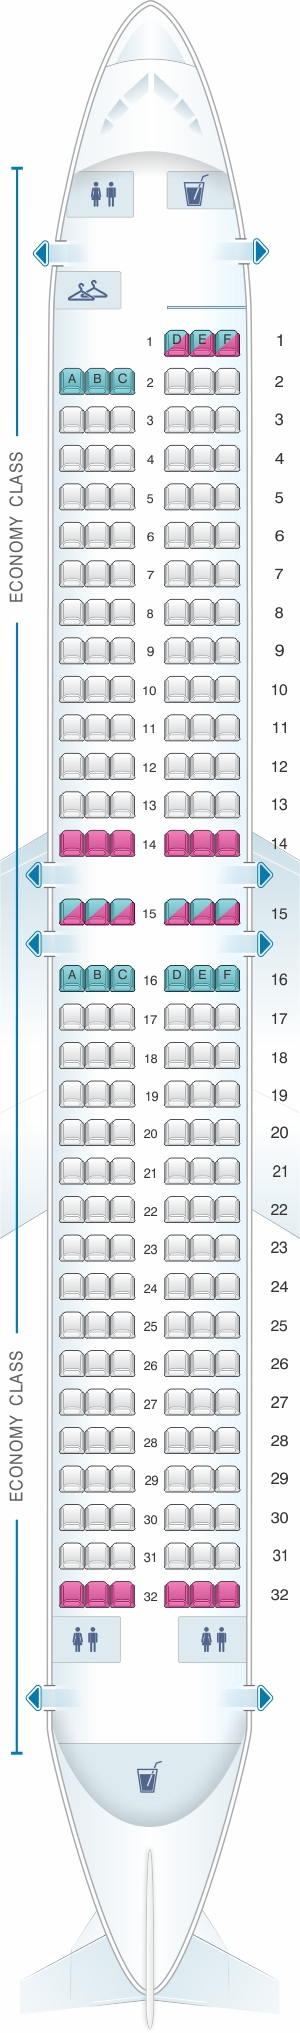 Seat map for SpiceJet Boeing B737 MAX8